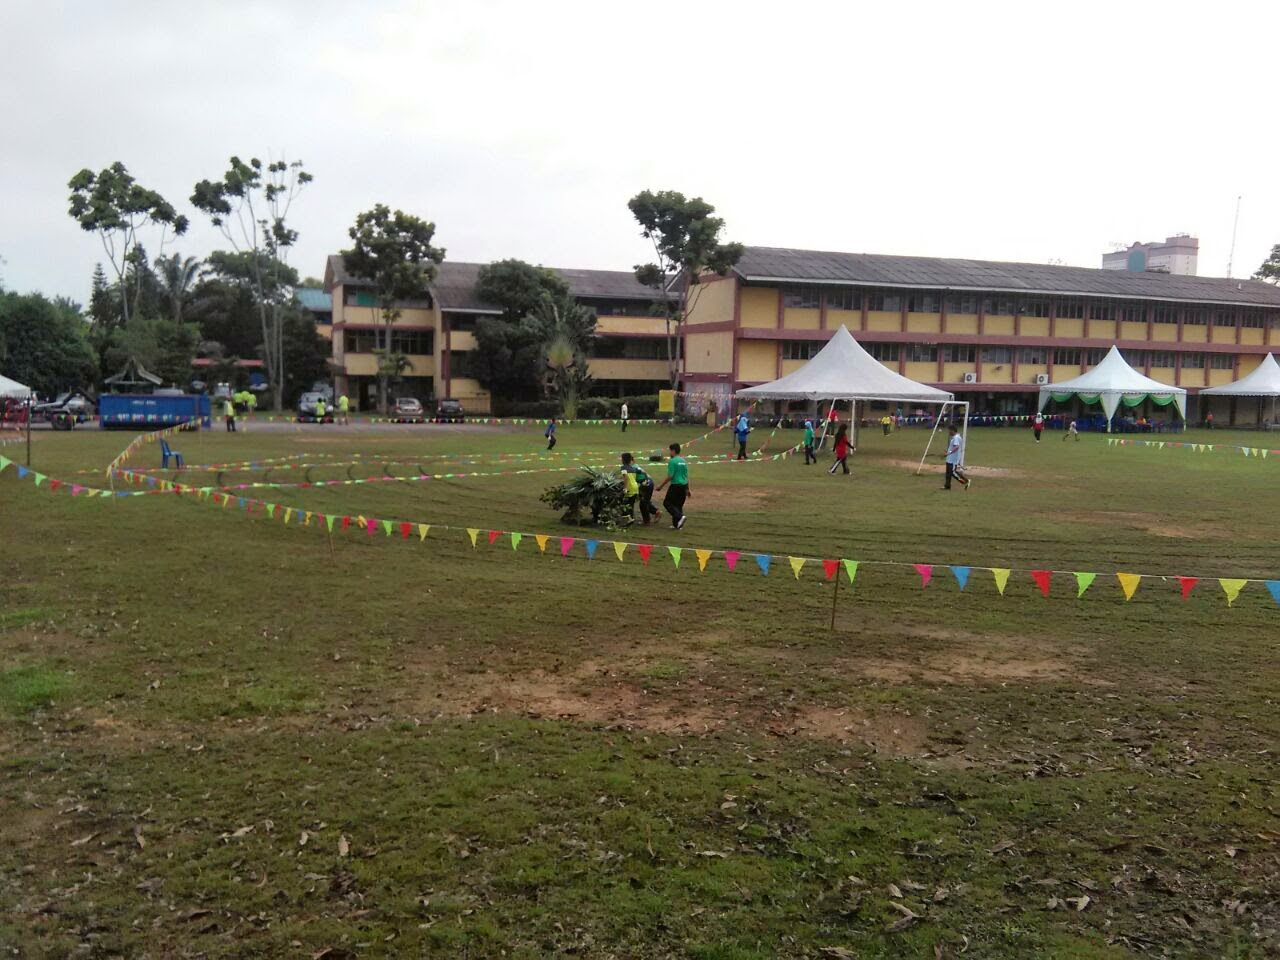 Image from SK Seafield